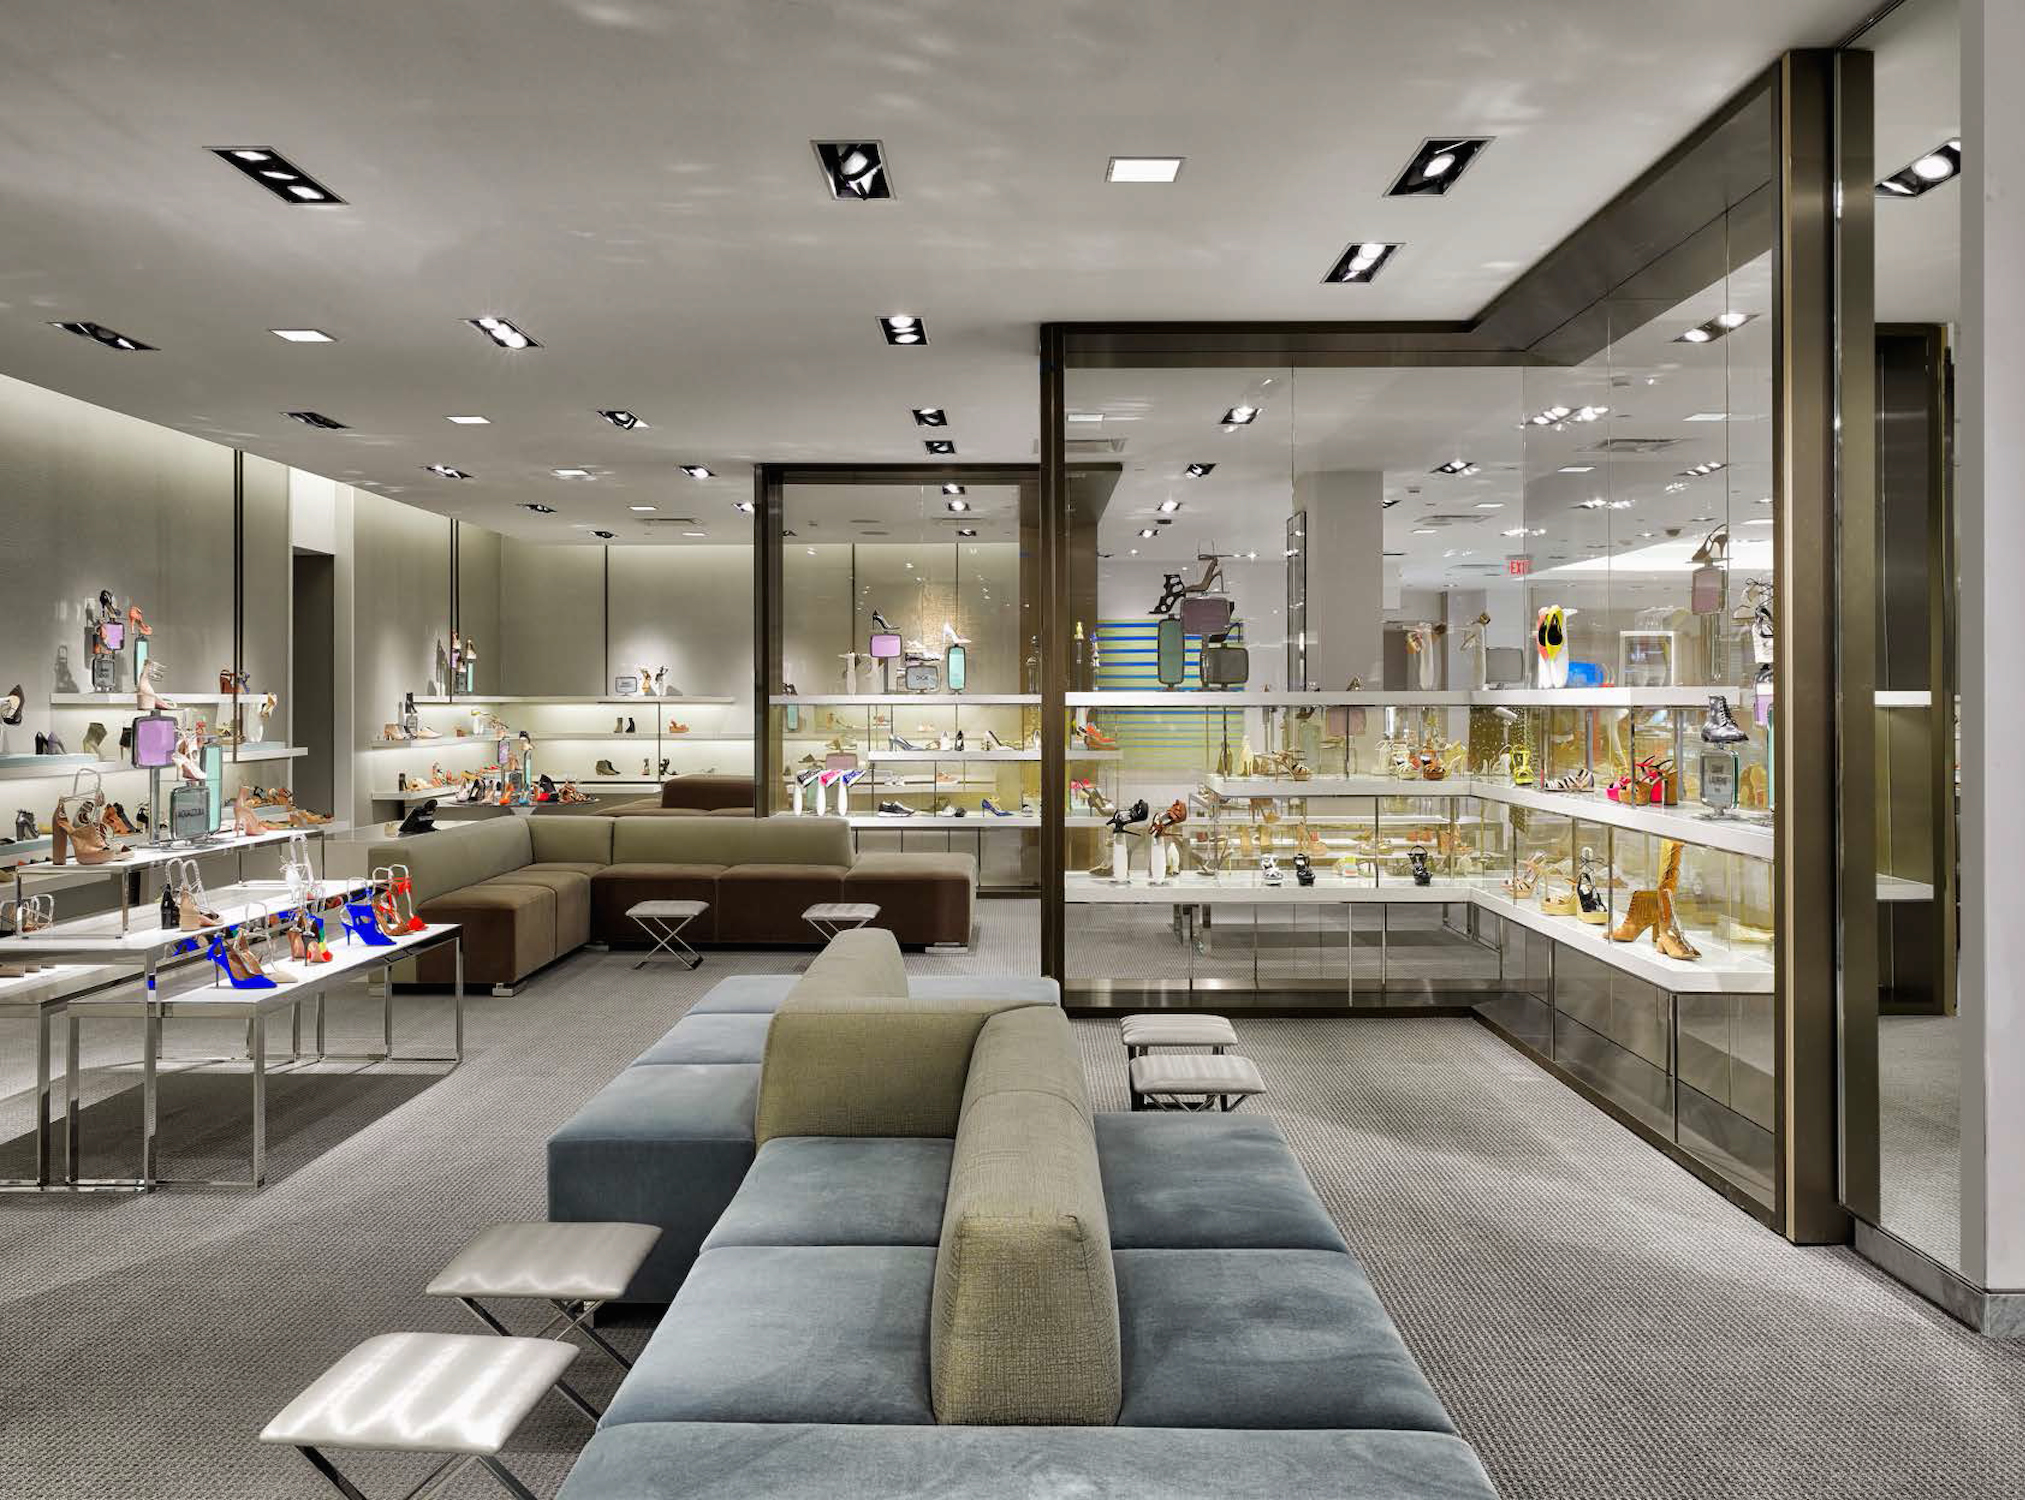 Neiman marcus opens first long island location long for Roosevelt field jewelry stores